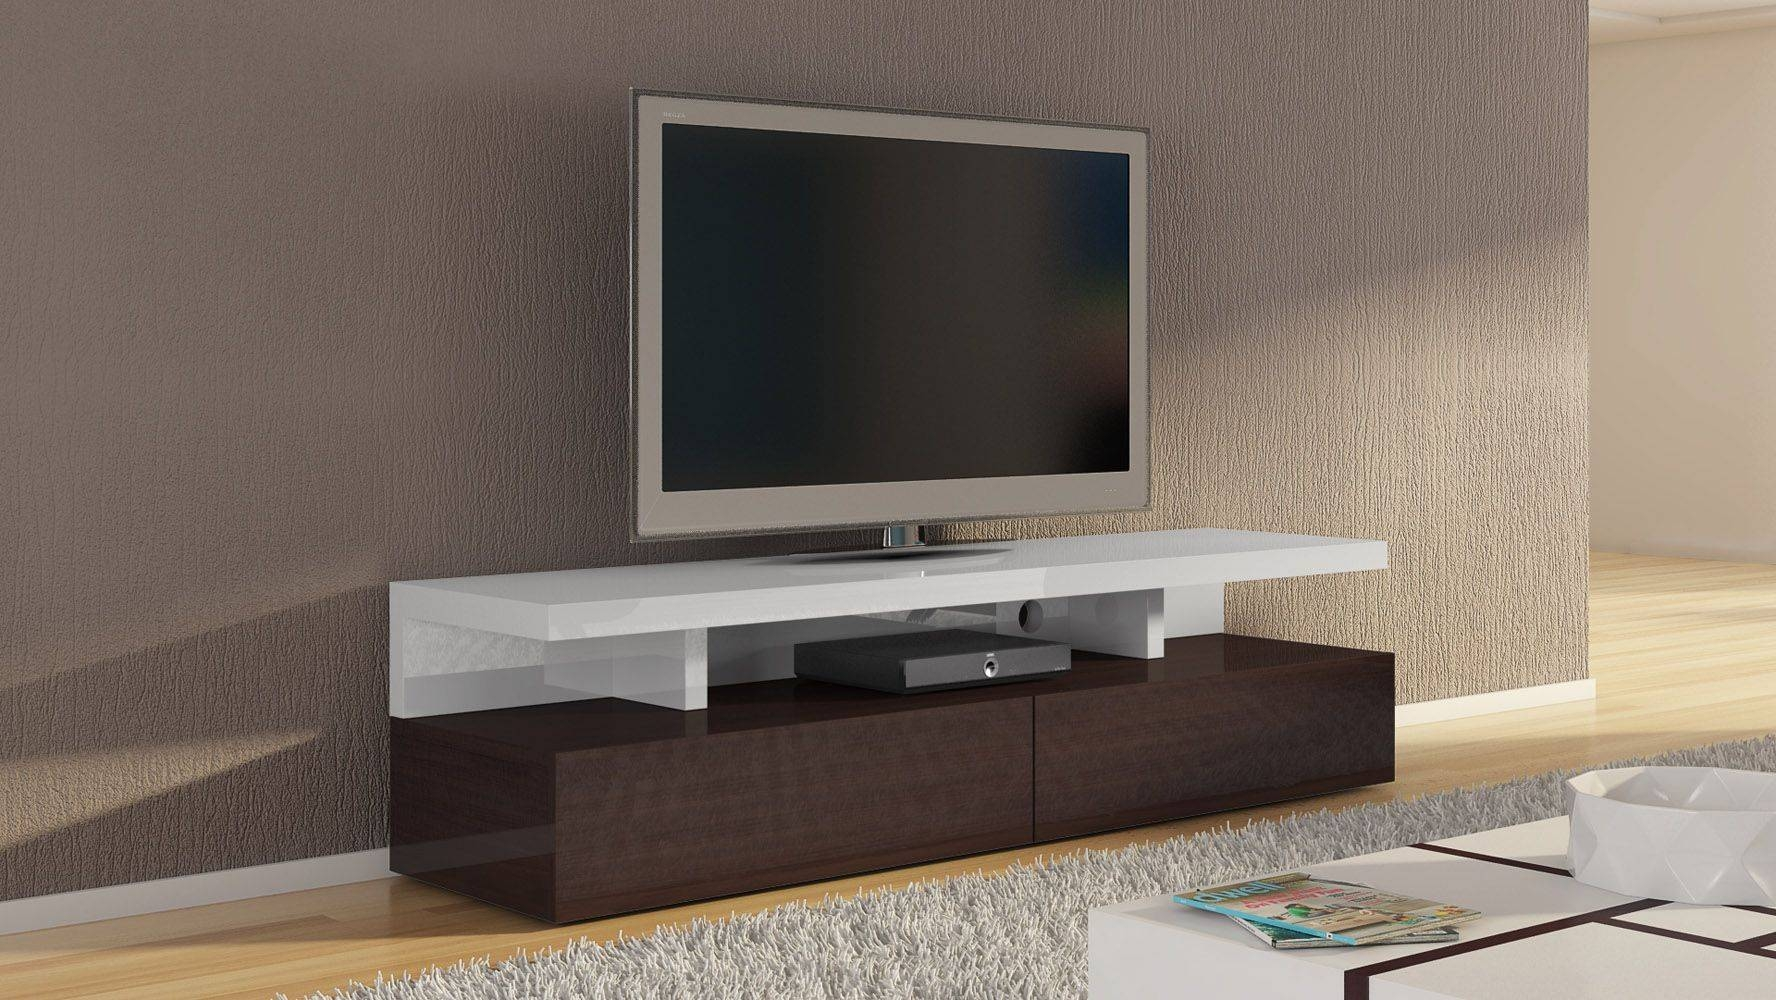 Dark Wood And White High Gloss Lacquer Mcintosh 71 Inch Tv Stand inside White and Wood Tv Stands (Image 5 of 15)